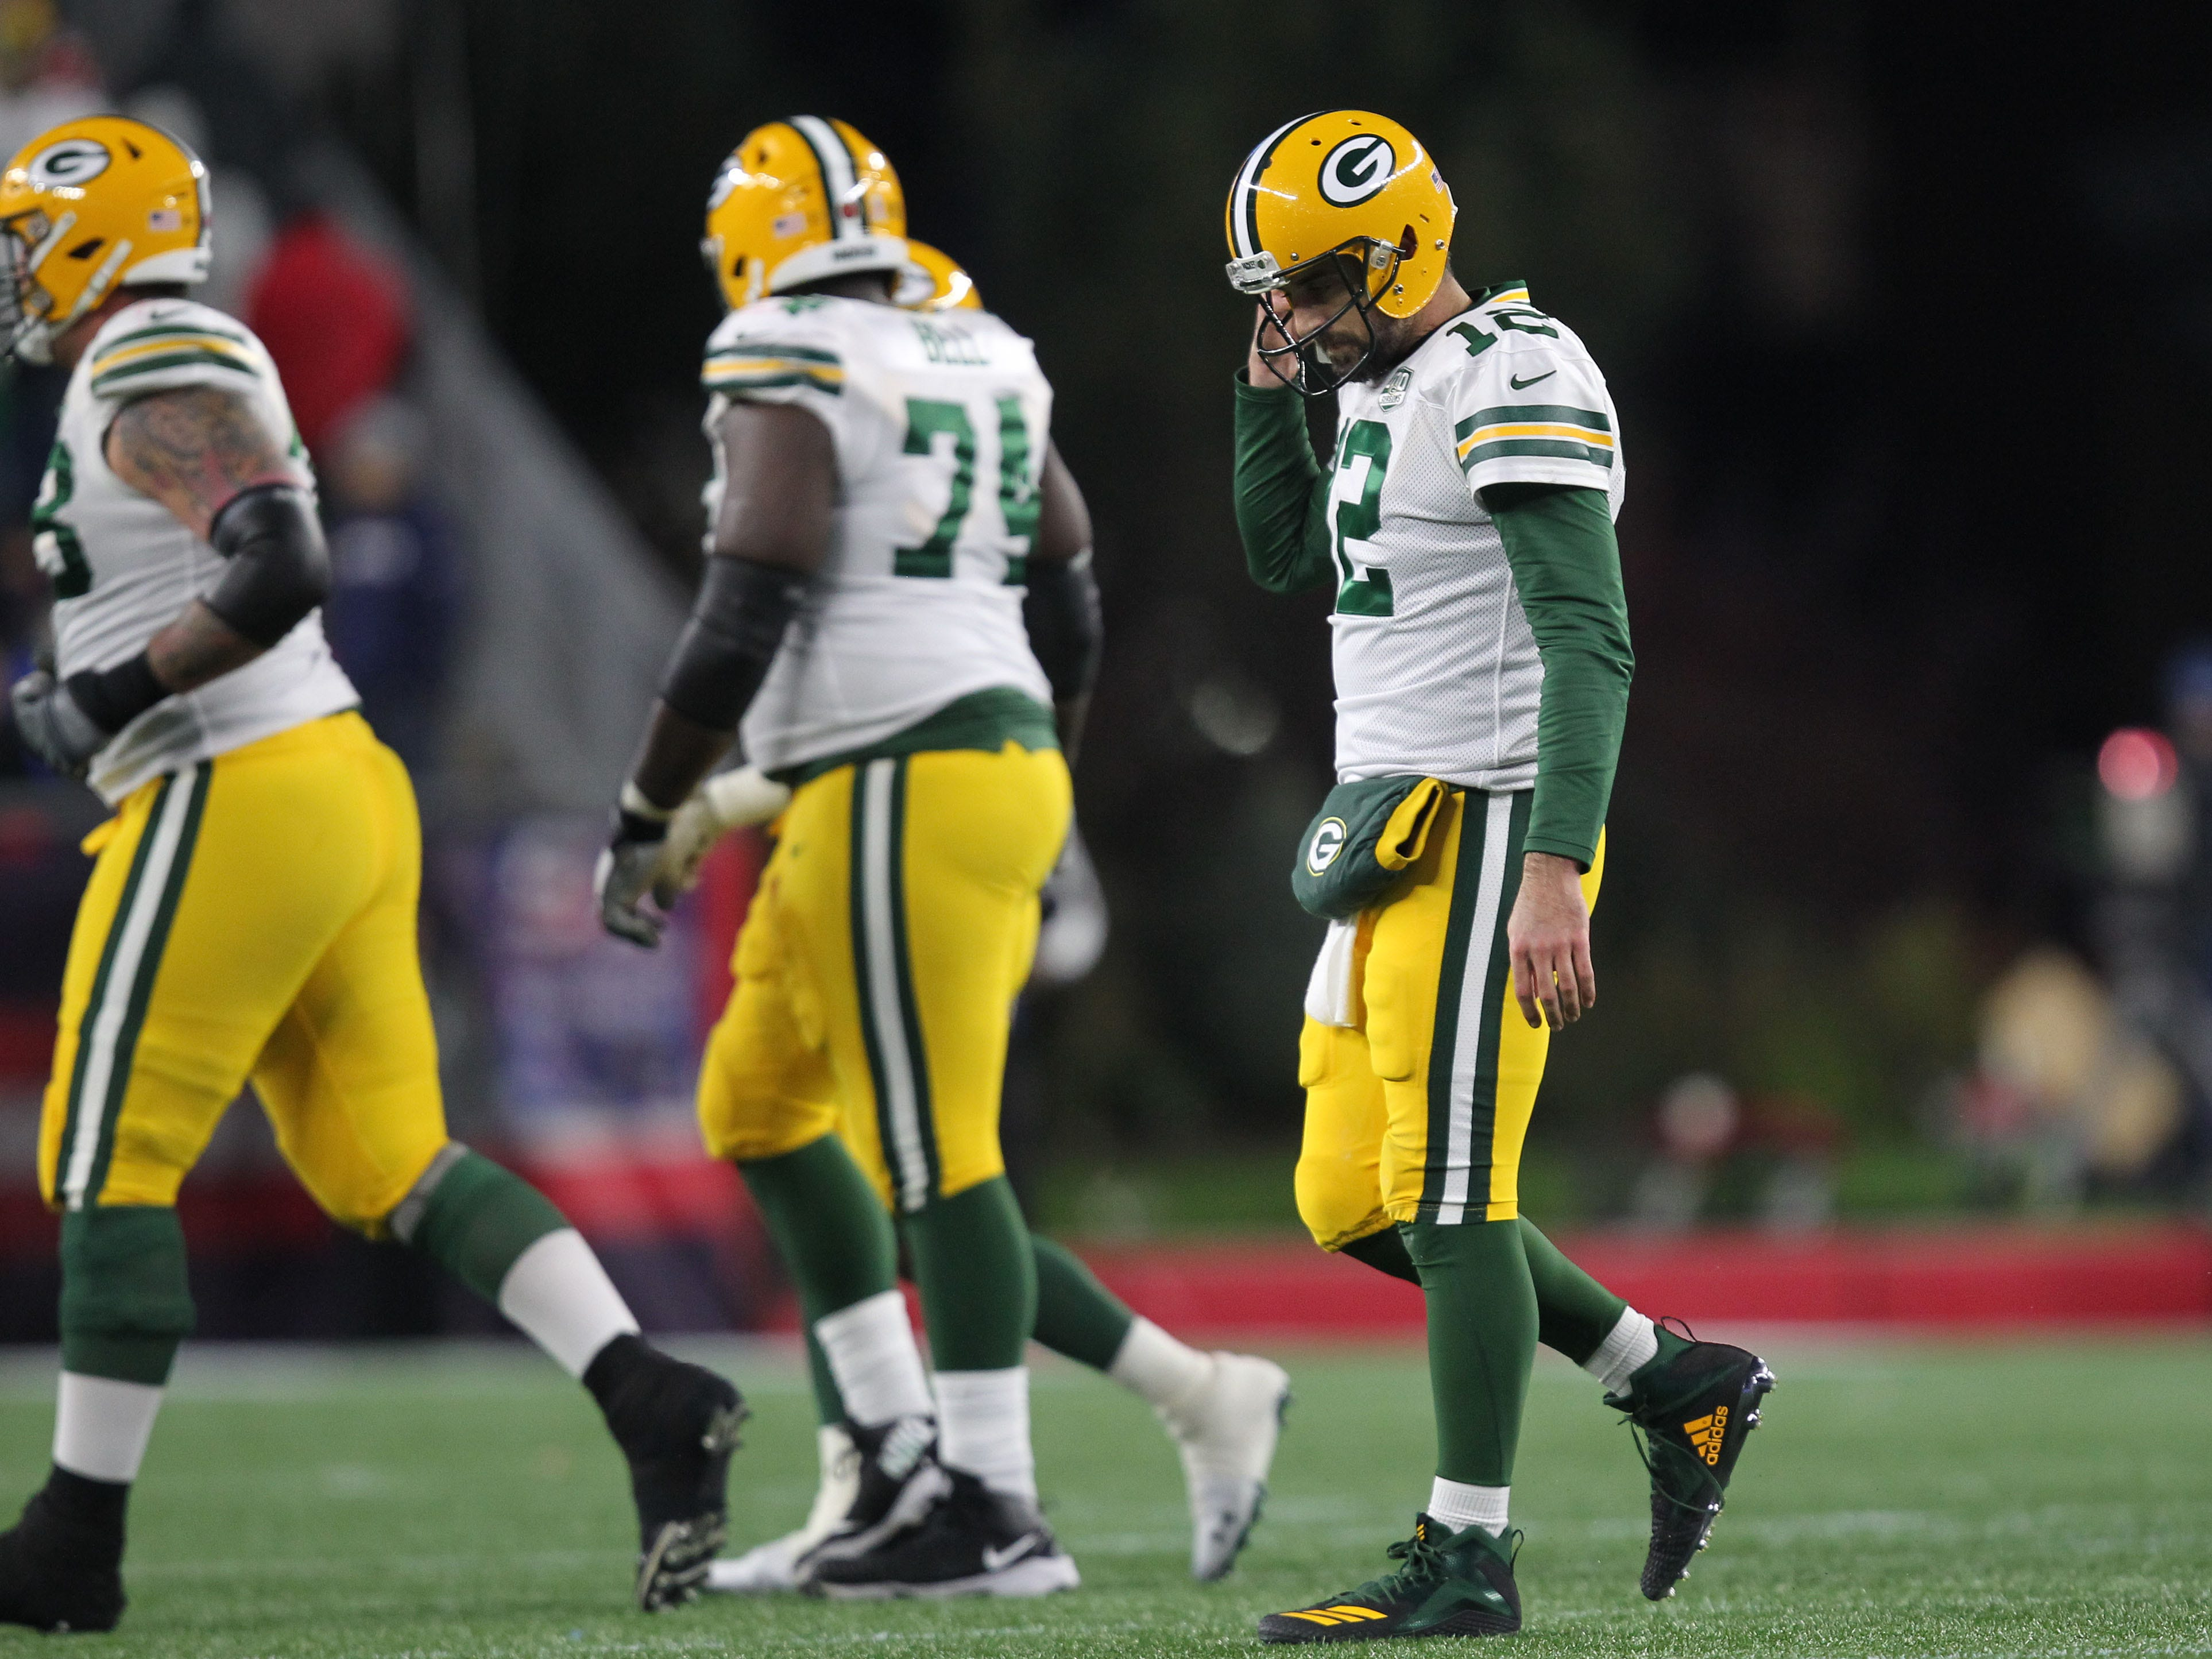 15. Packers (3-4-1) | Last game: Lost to the Patriots, 31-17 | Previous ranking: 14